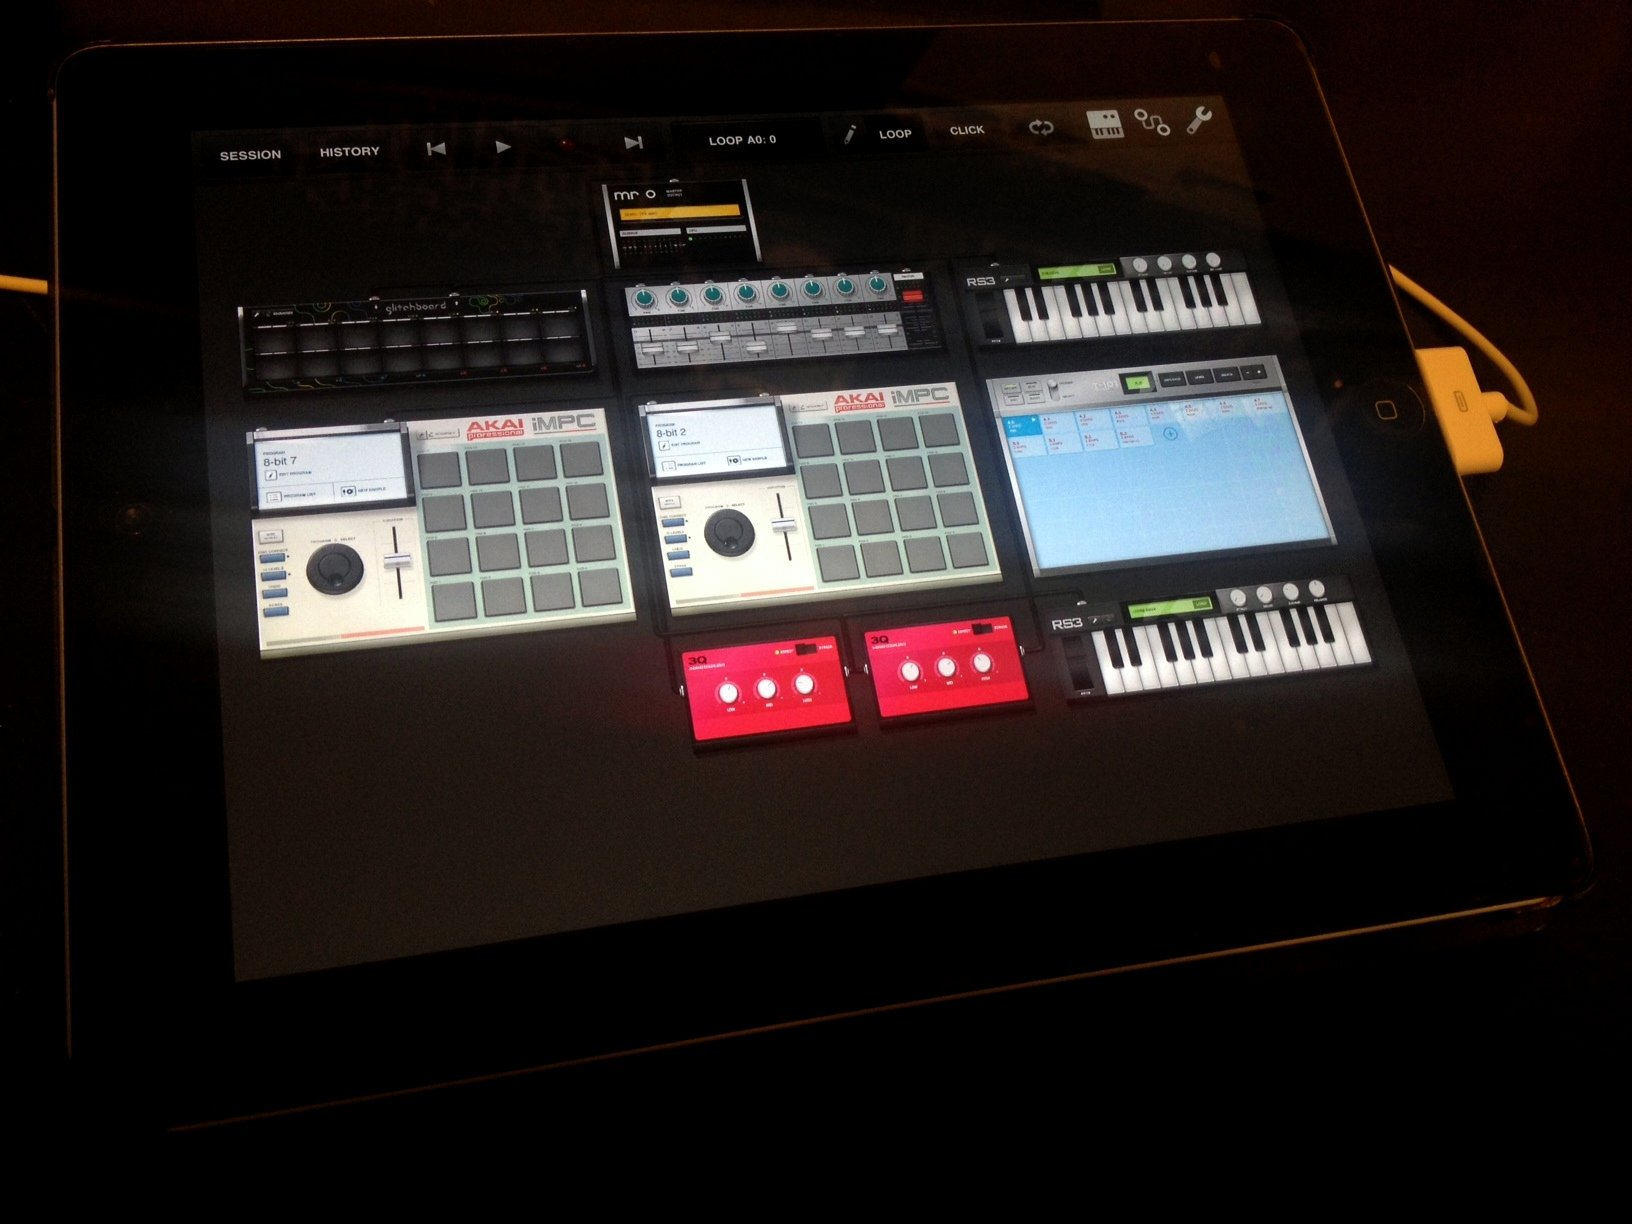 iPad via Apple Camera Connection Kit plus Midi Keyboards USB Hub controller